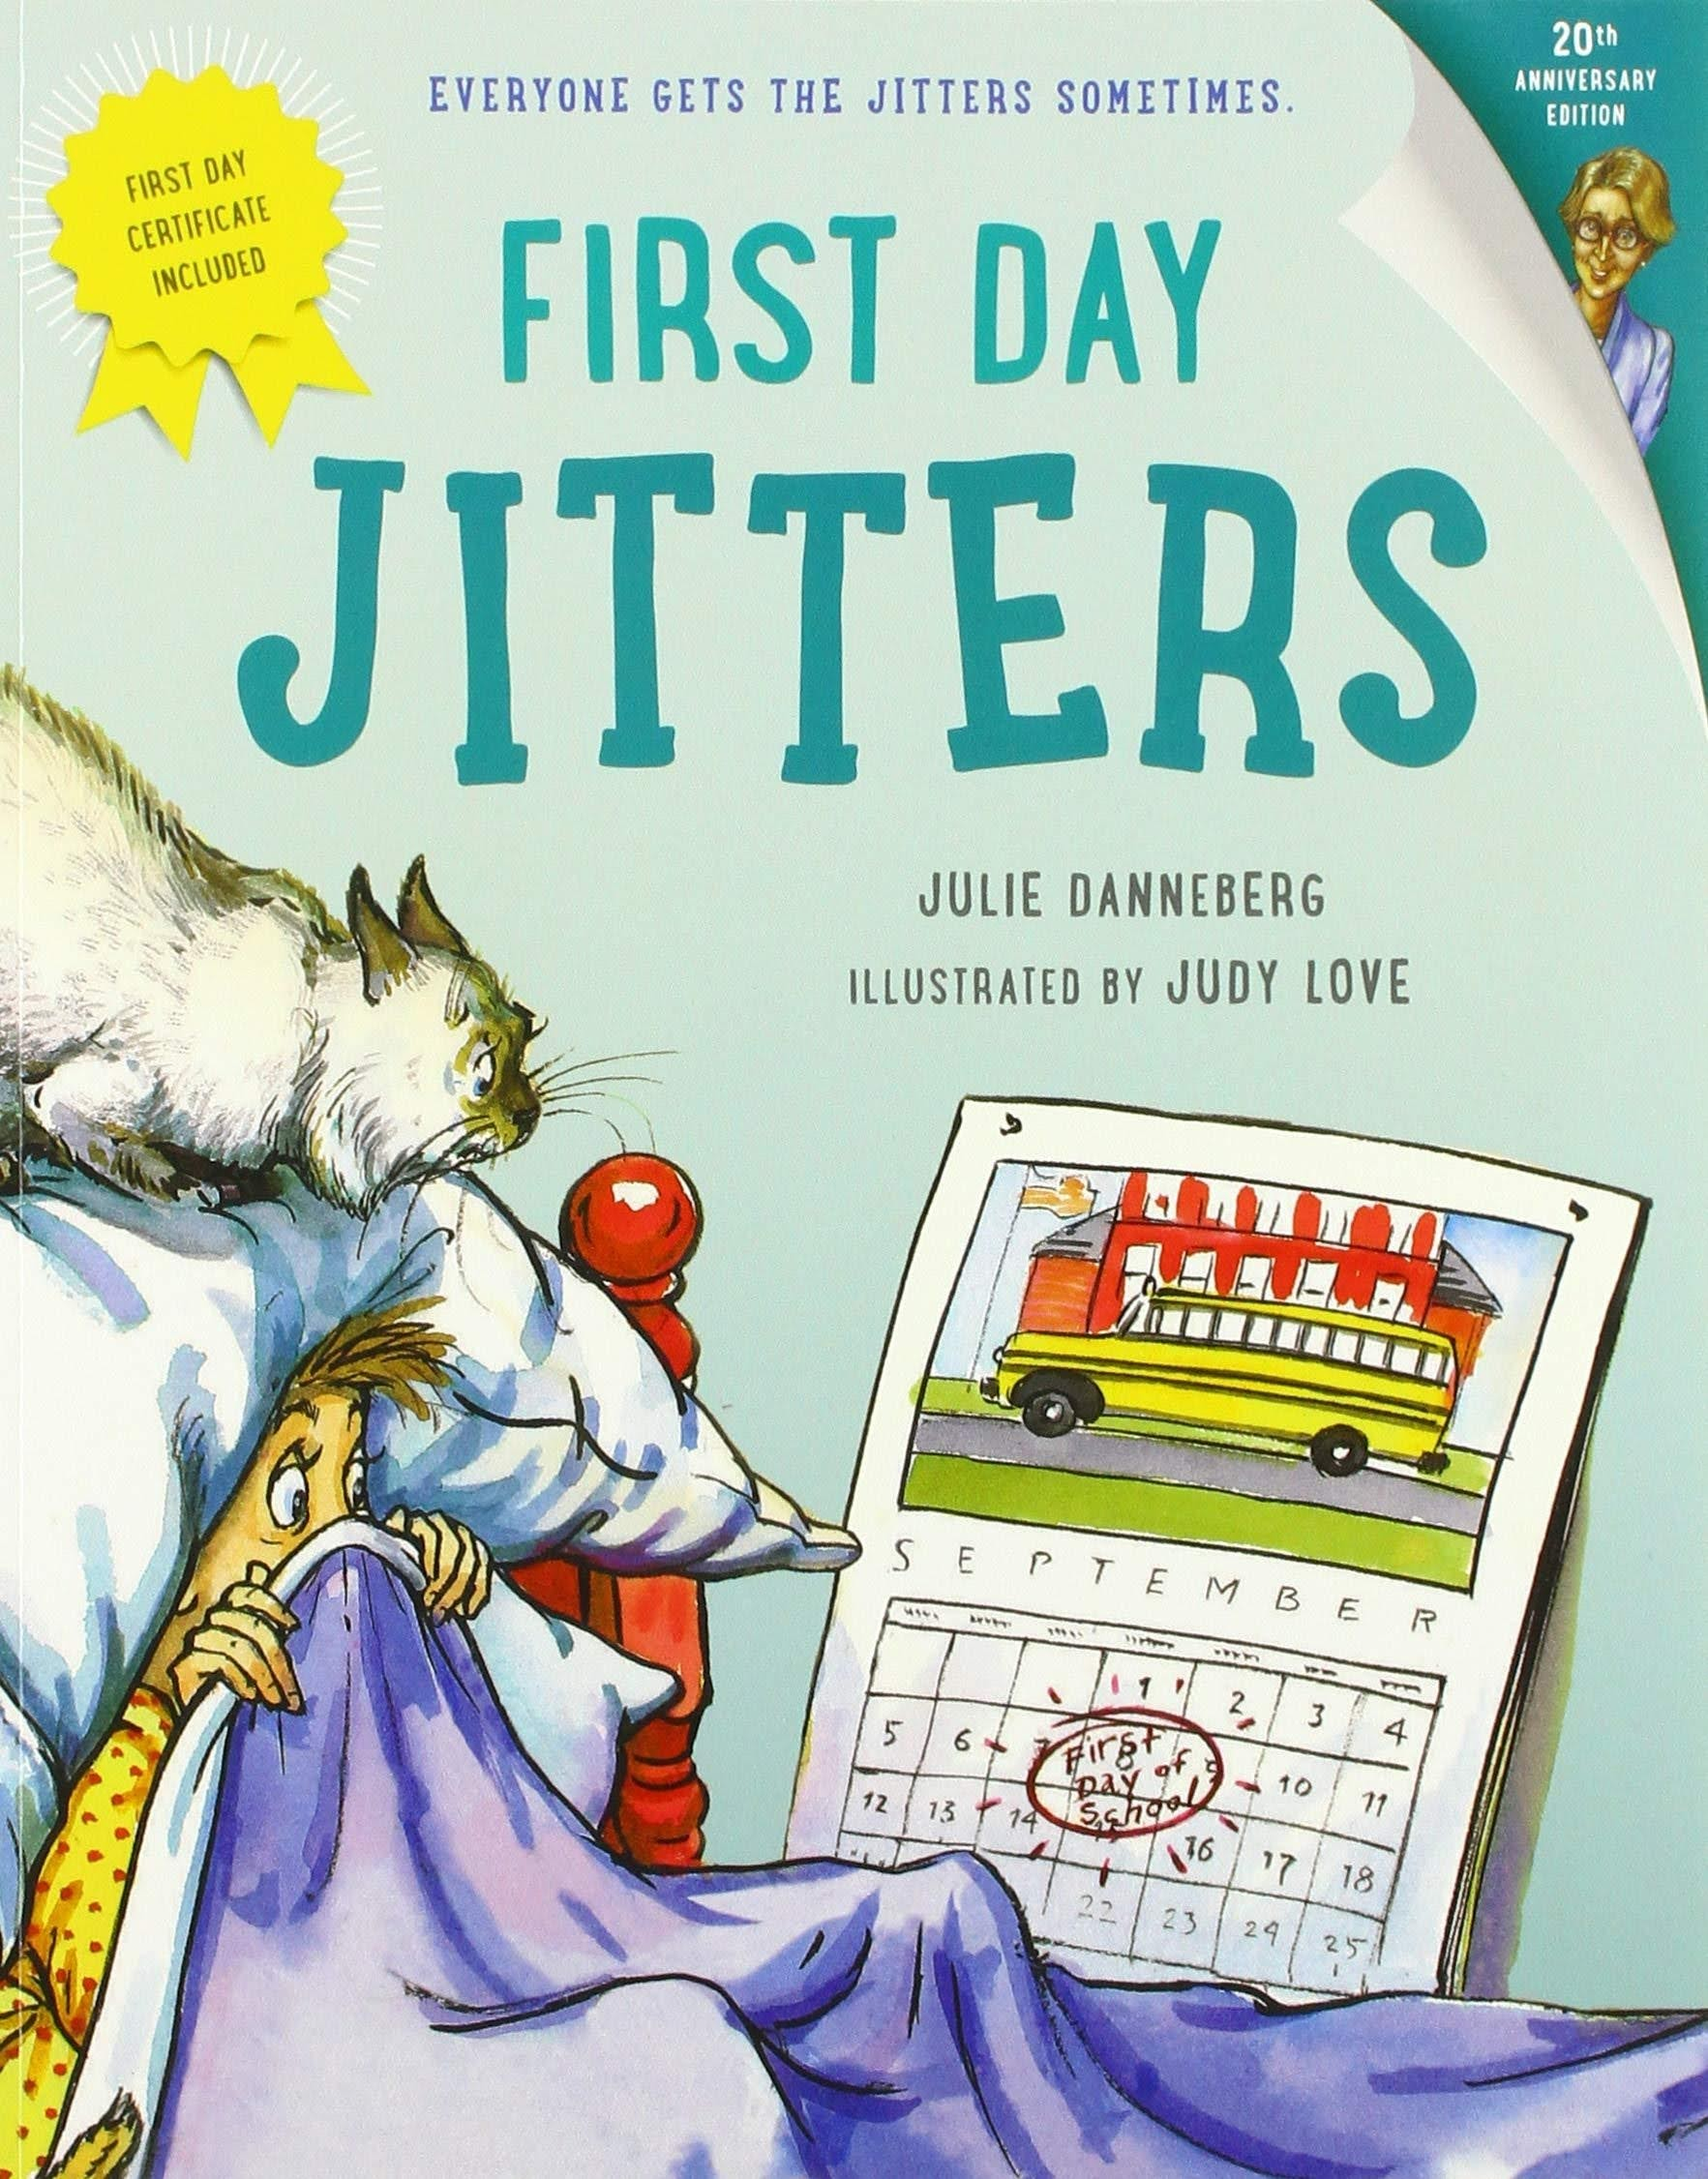 First Day Jitters by Julie Danneberg and illustrated by Judy Love